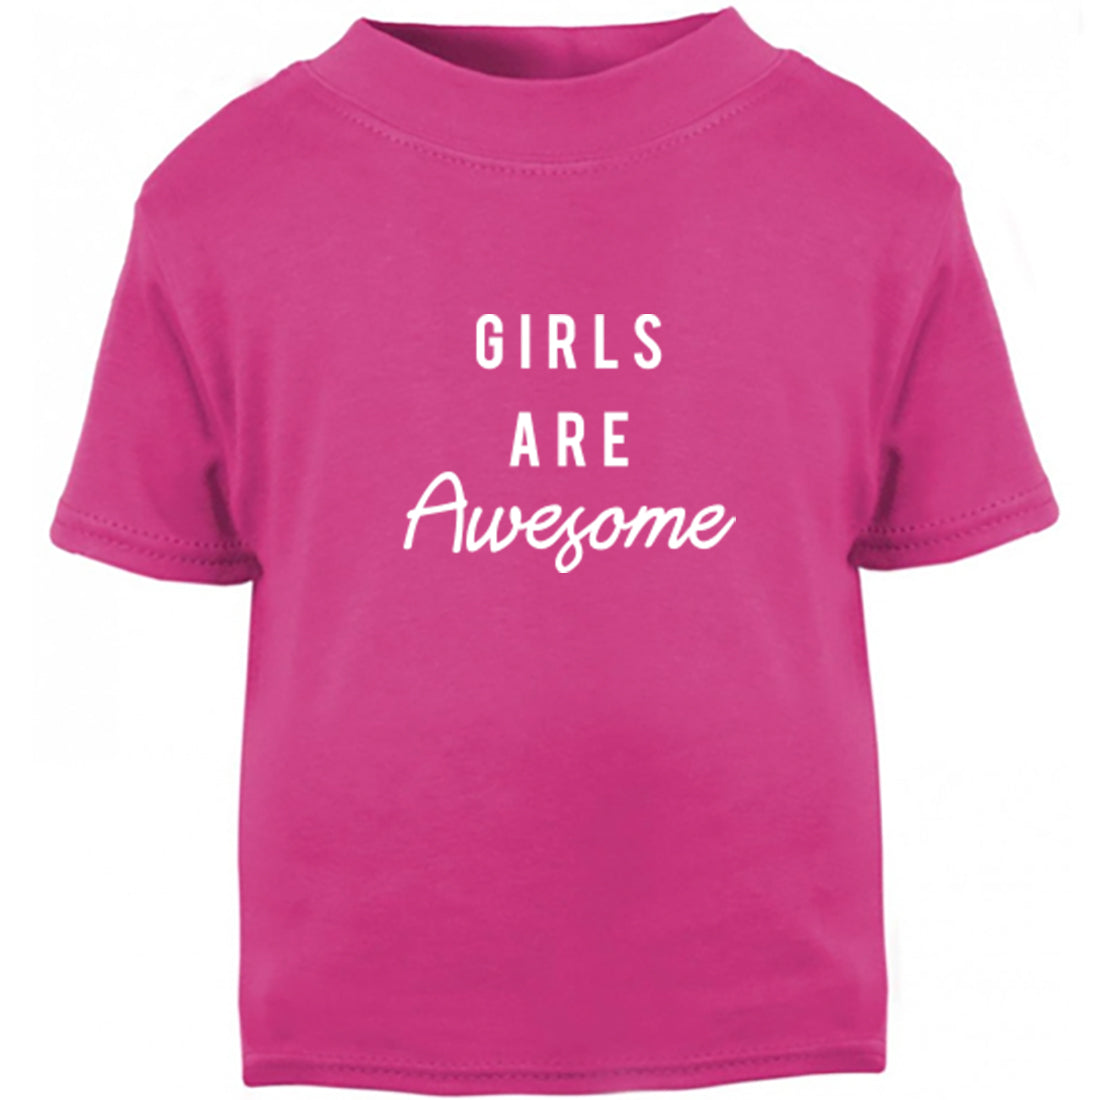 Girls Are Awesome Childrens Ages 3/4-12/14 Unisex Fit T-Shirt K2455 - Illustrated Identity Ltd.